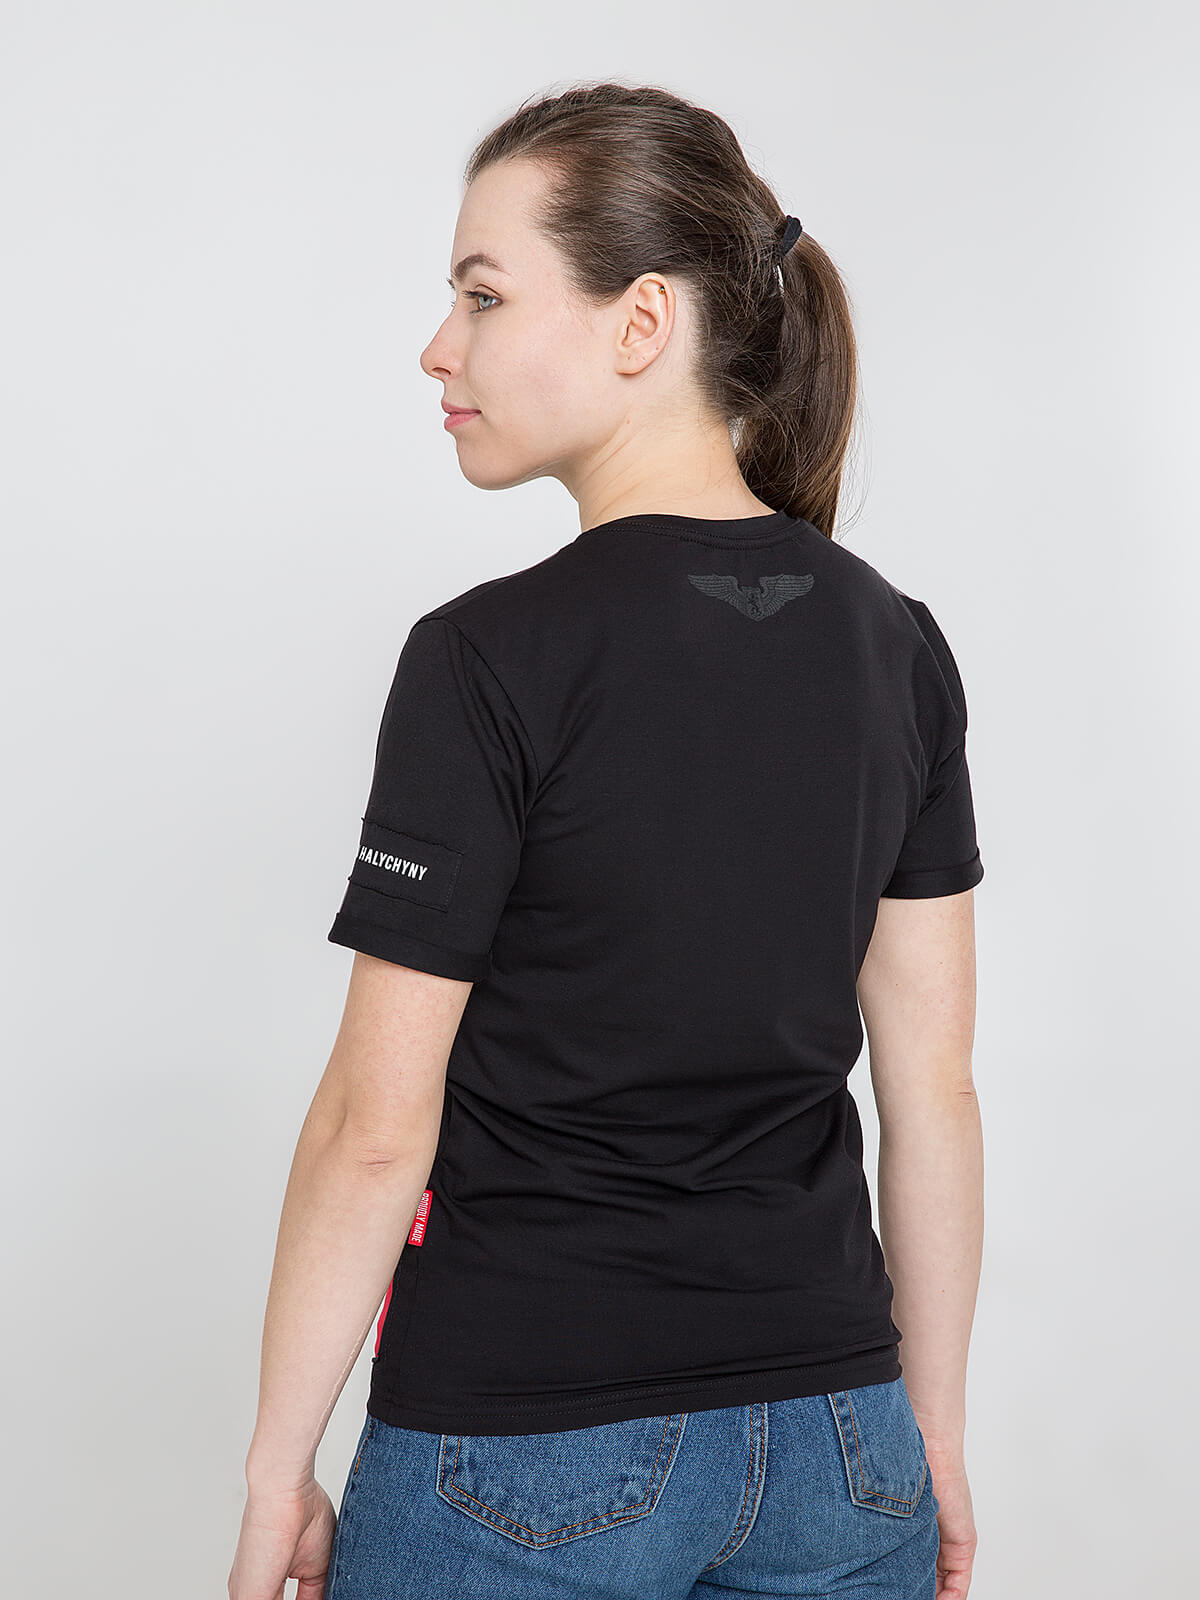 Women's T-Shirt Sikorsky. Color black.  Don't worry about the universal size.